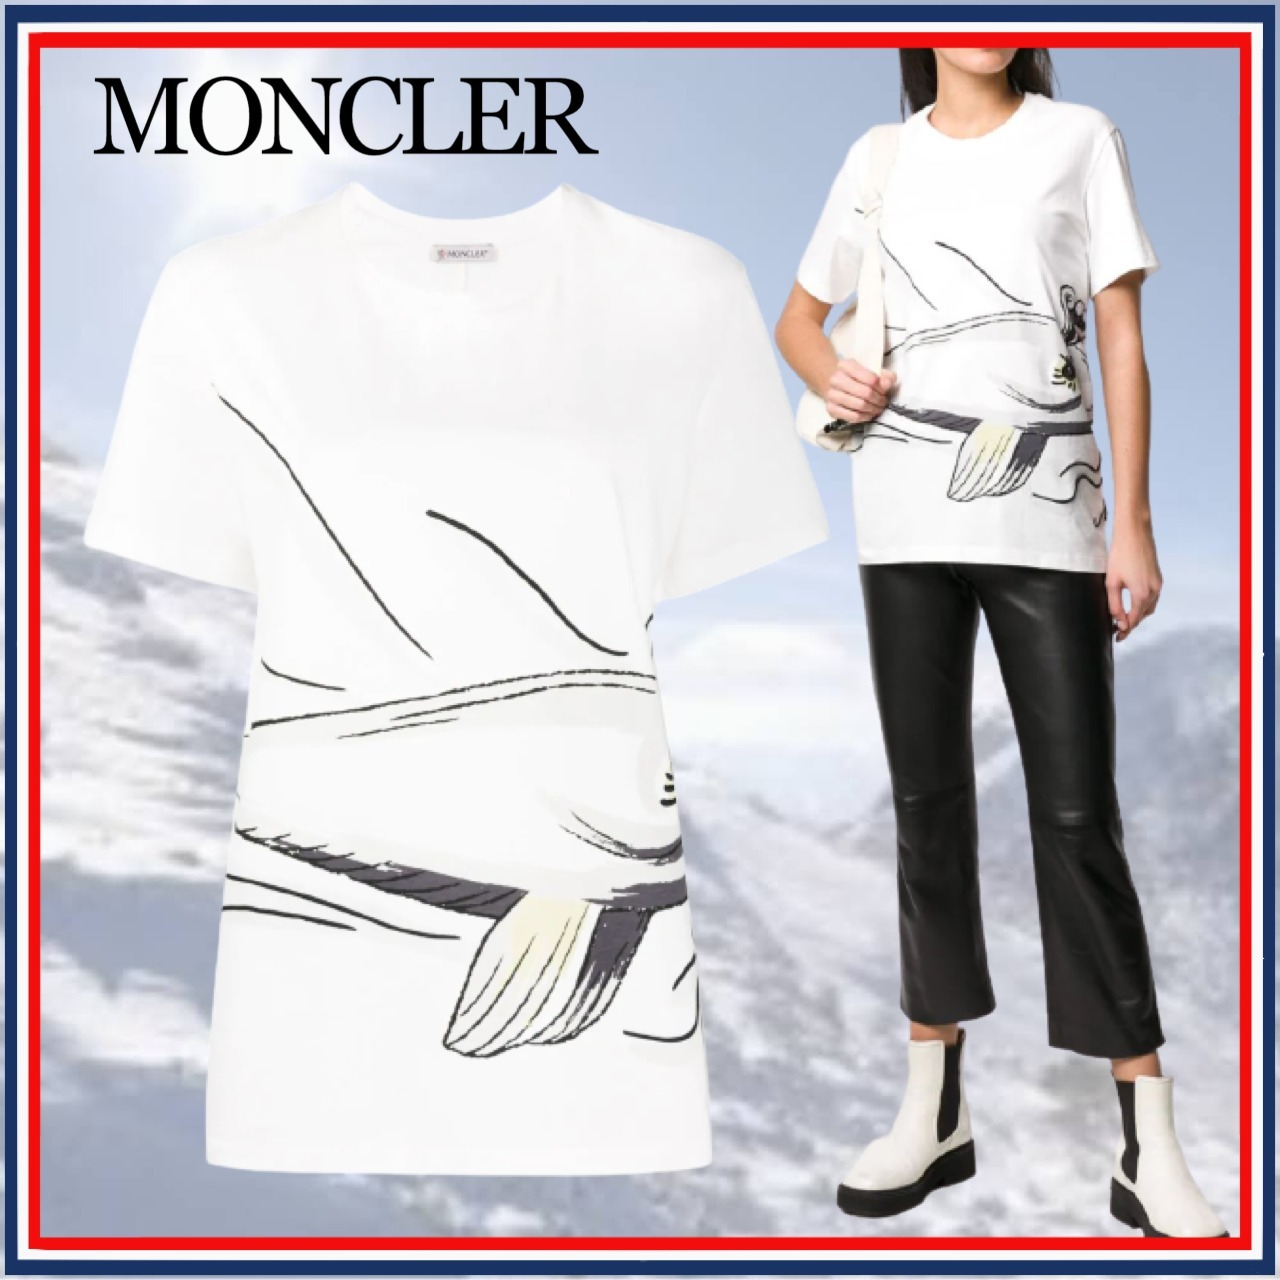 MONCLER モンクレール 魚プリント Tシャツ ロゴ 刺繍 半袖 白 綿 (MONCLER/Tシャツ・カットソー) 68240093